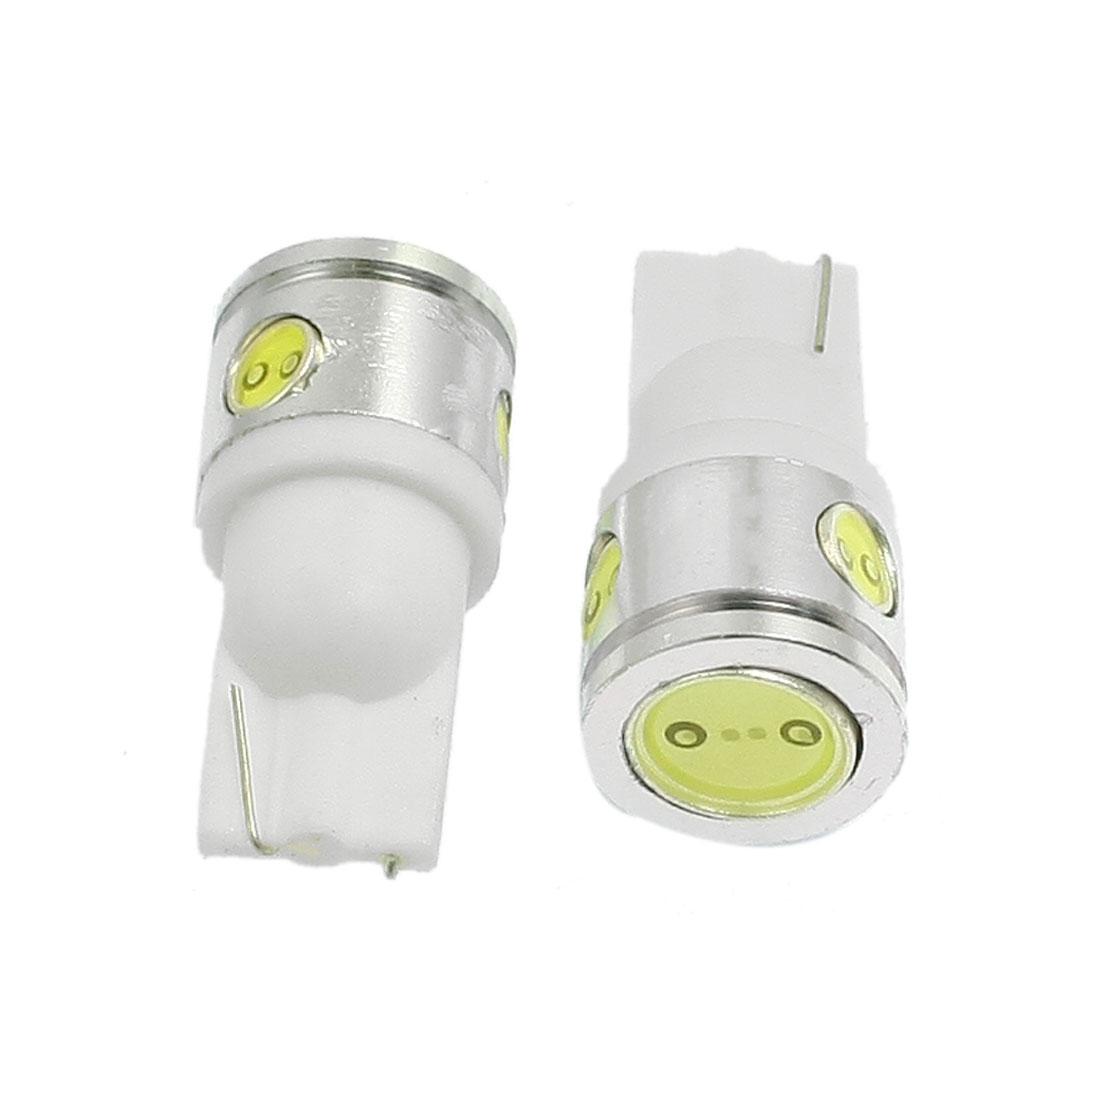 2 Pcs White 2.5W T10 W5W 904 168 194 Car LED Dome Map Light Bulb